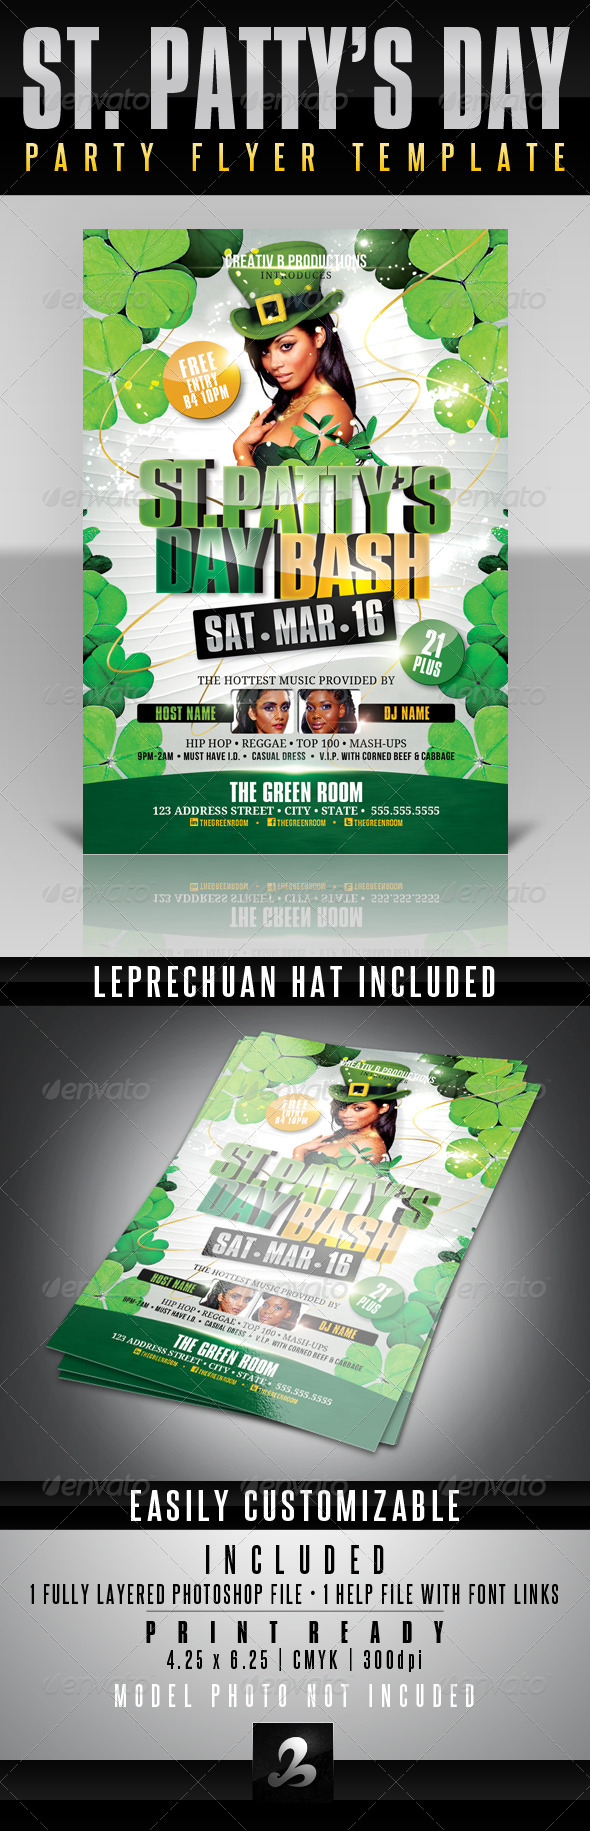 St. Patty's Day Bash Flyer Template - Clubs & Parties Events